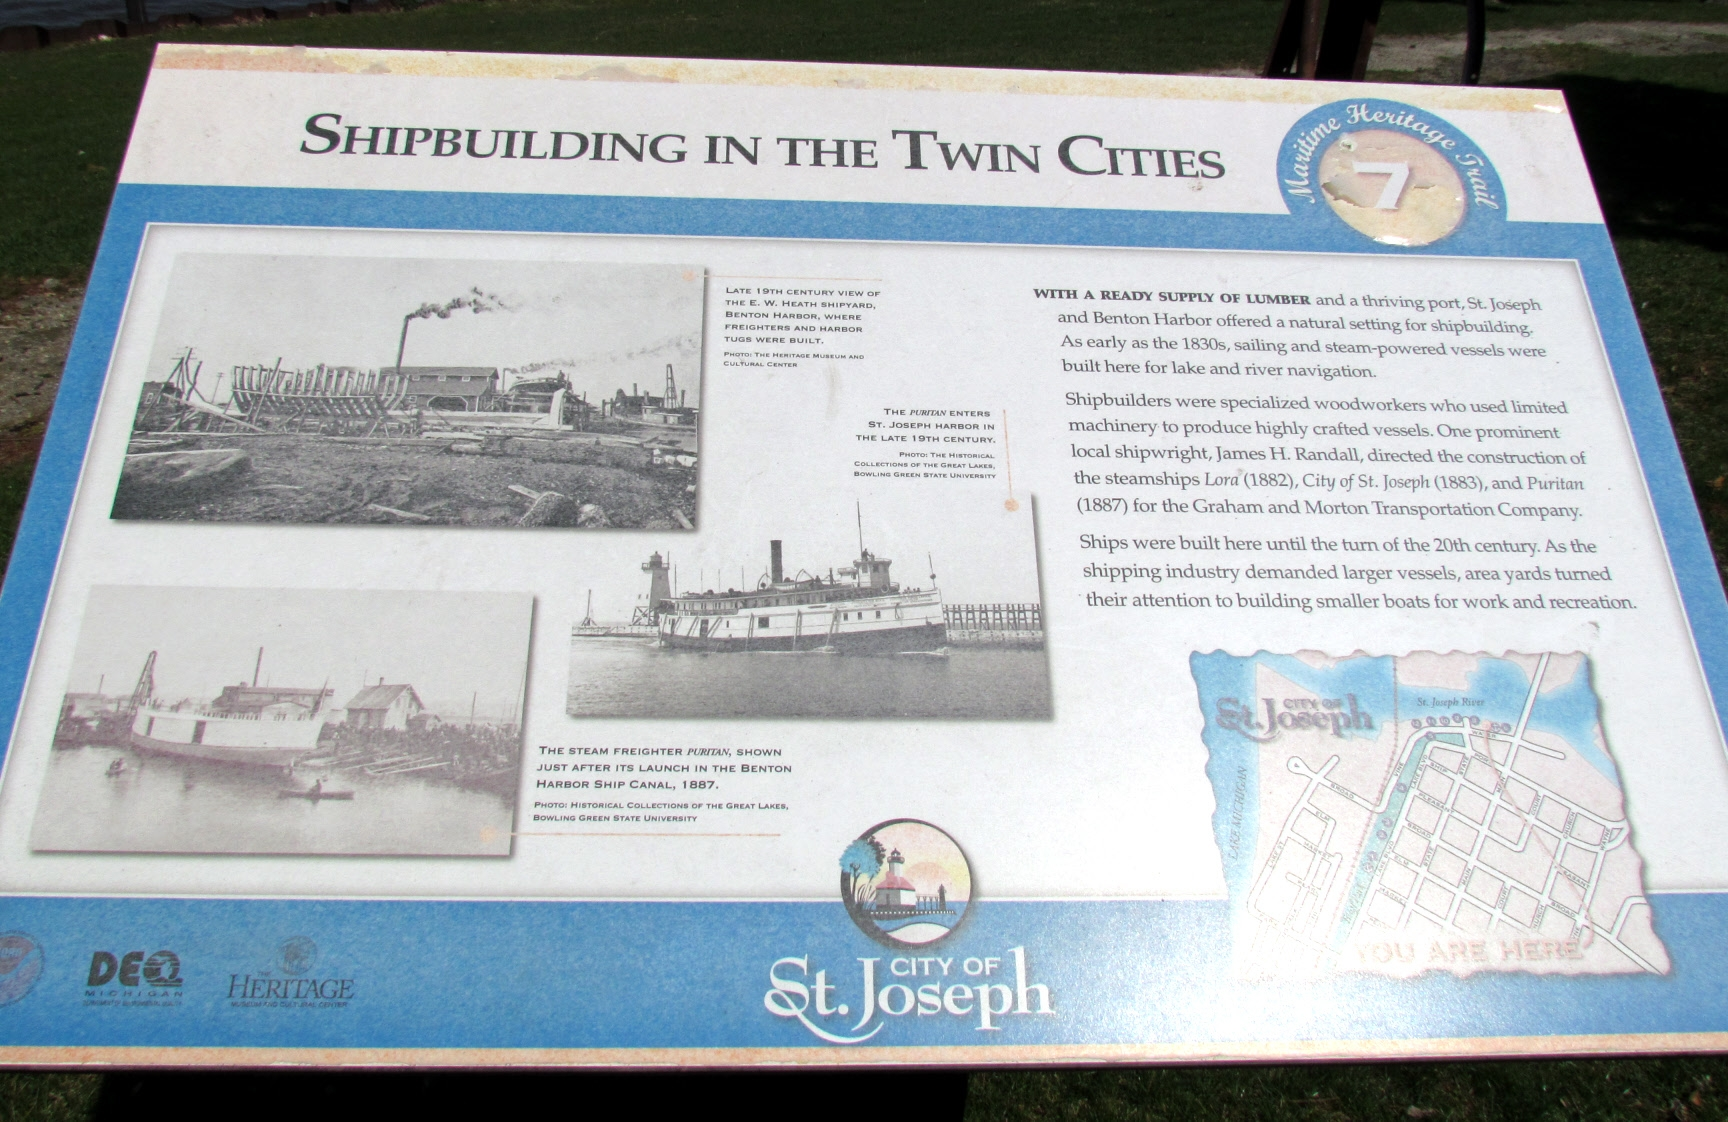 Shipbuilding in the Twin Cities Marker